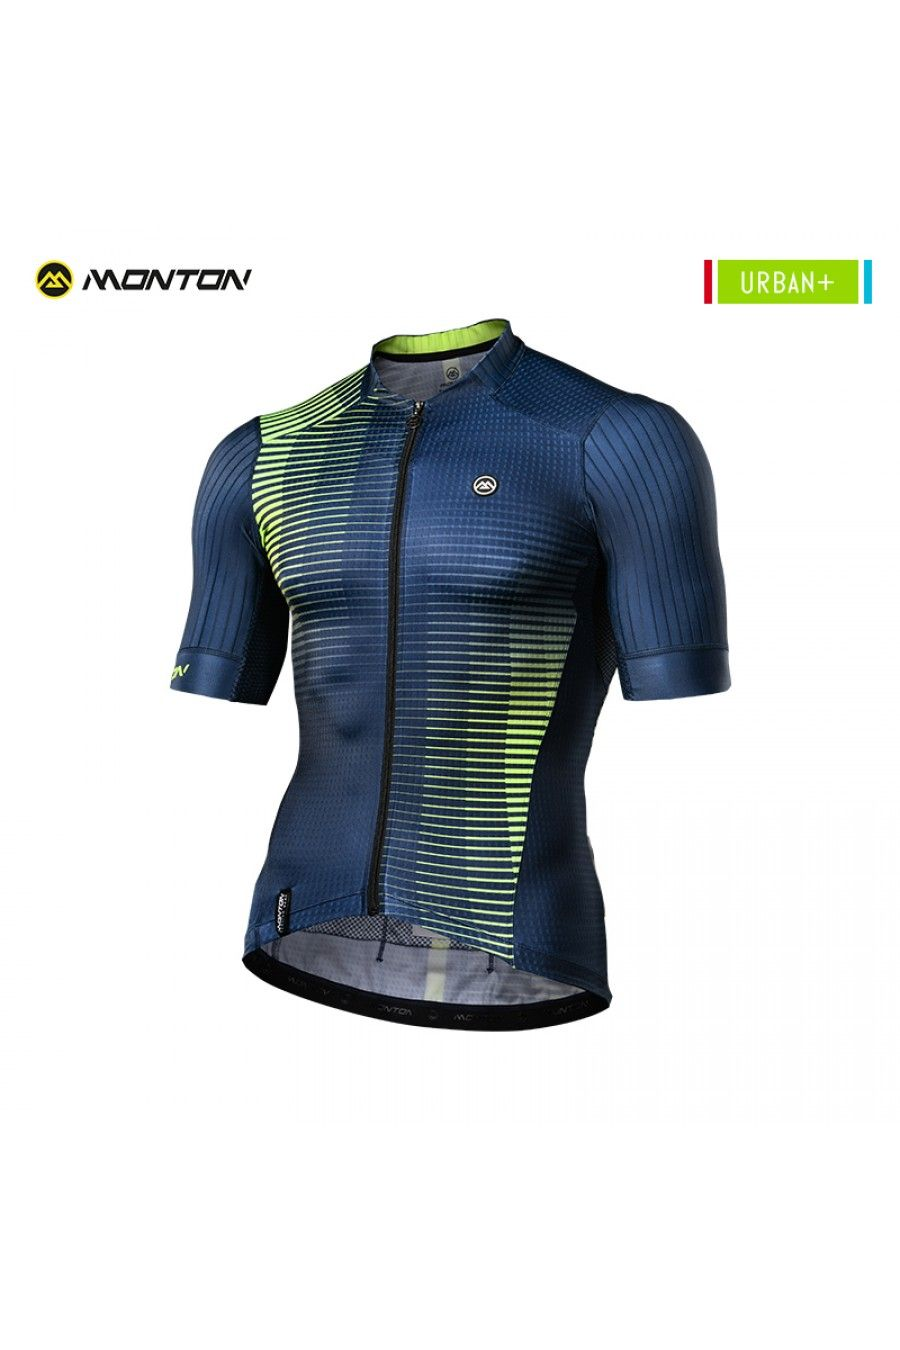 Mens Cycling Jersey Cycling Outfit Cycling Tops Mens Cycling